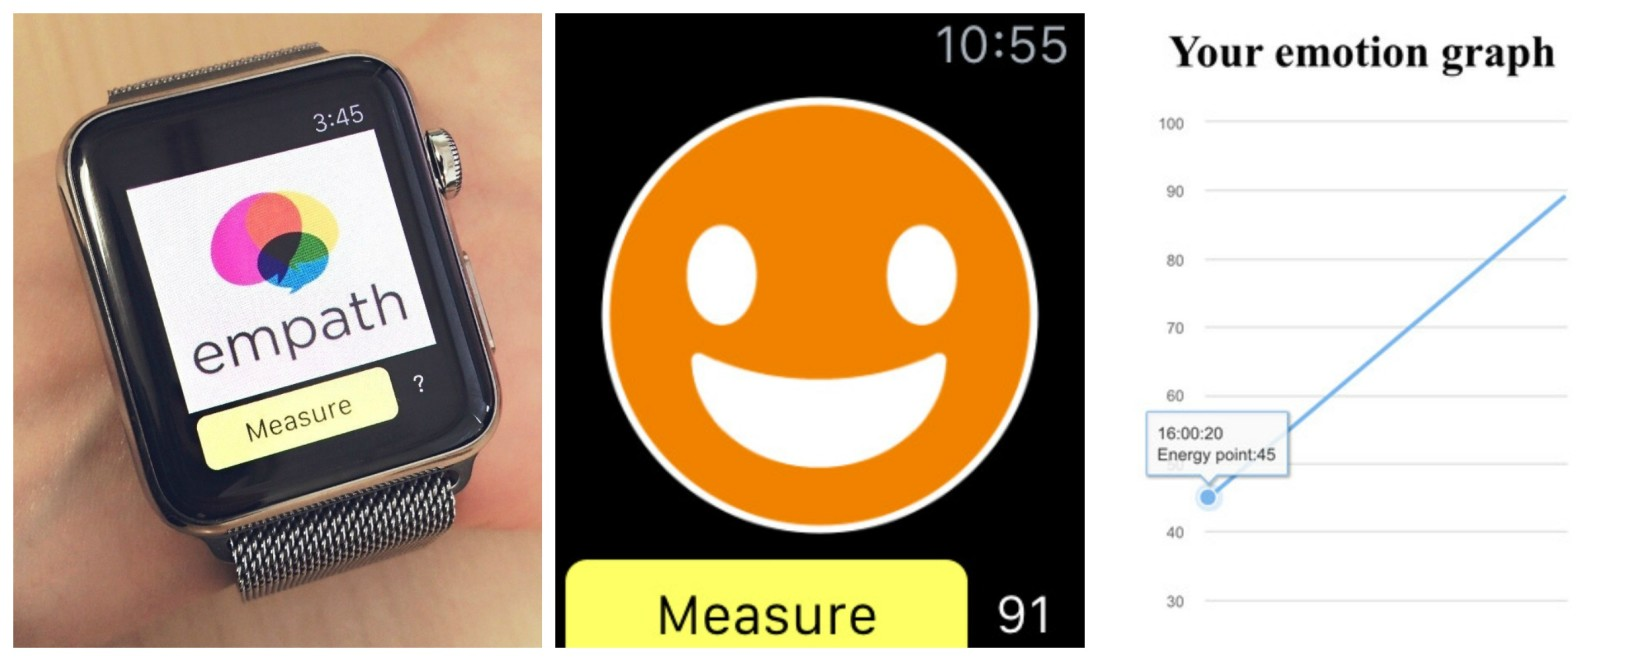 Your Apple Watch can now tell if you're happy or sad